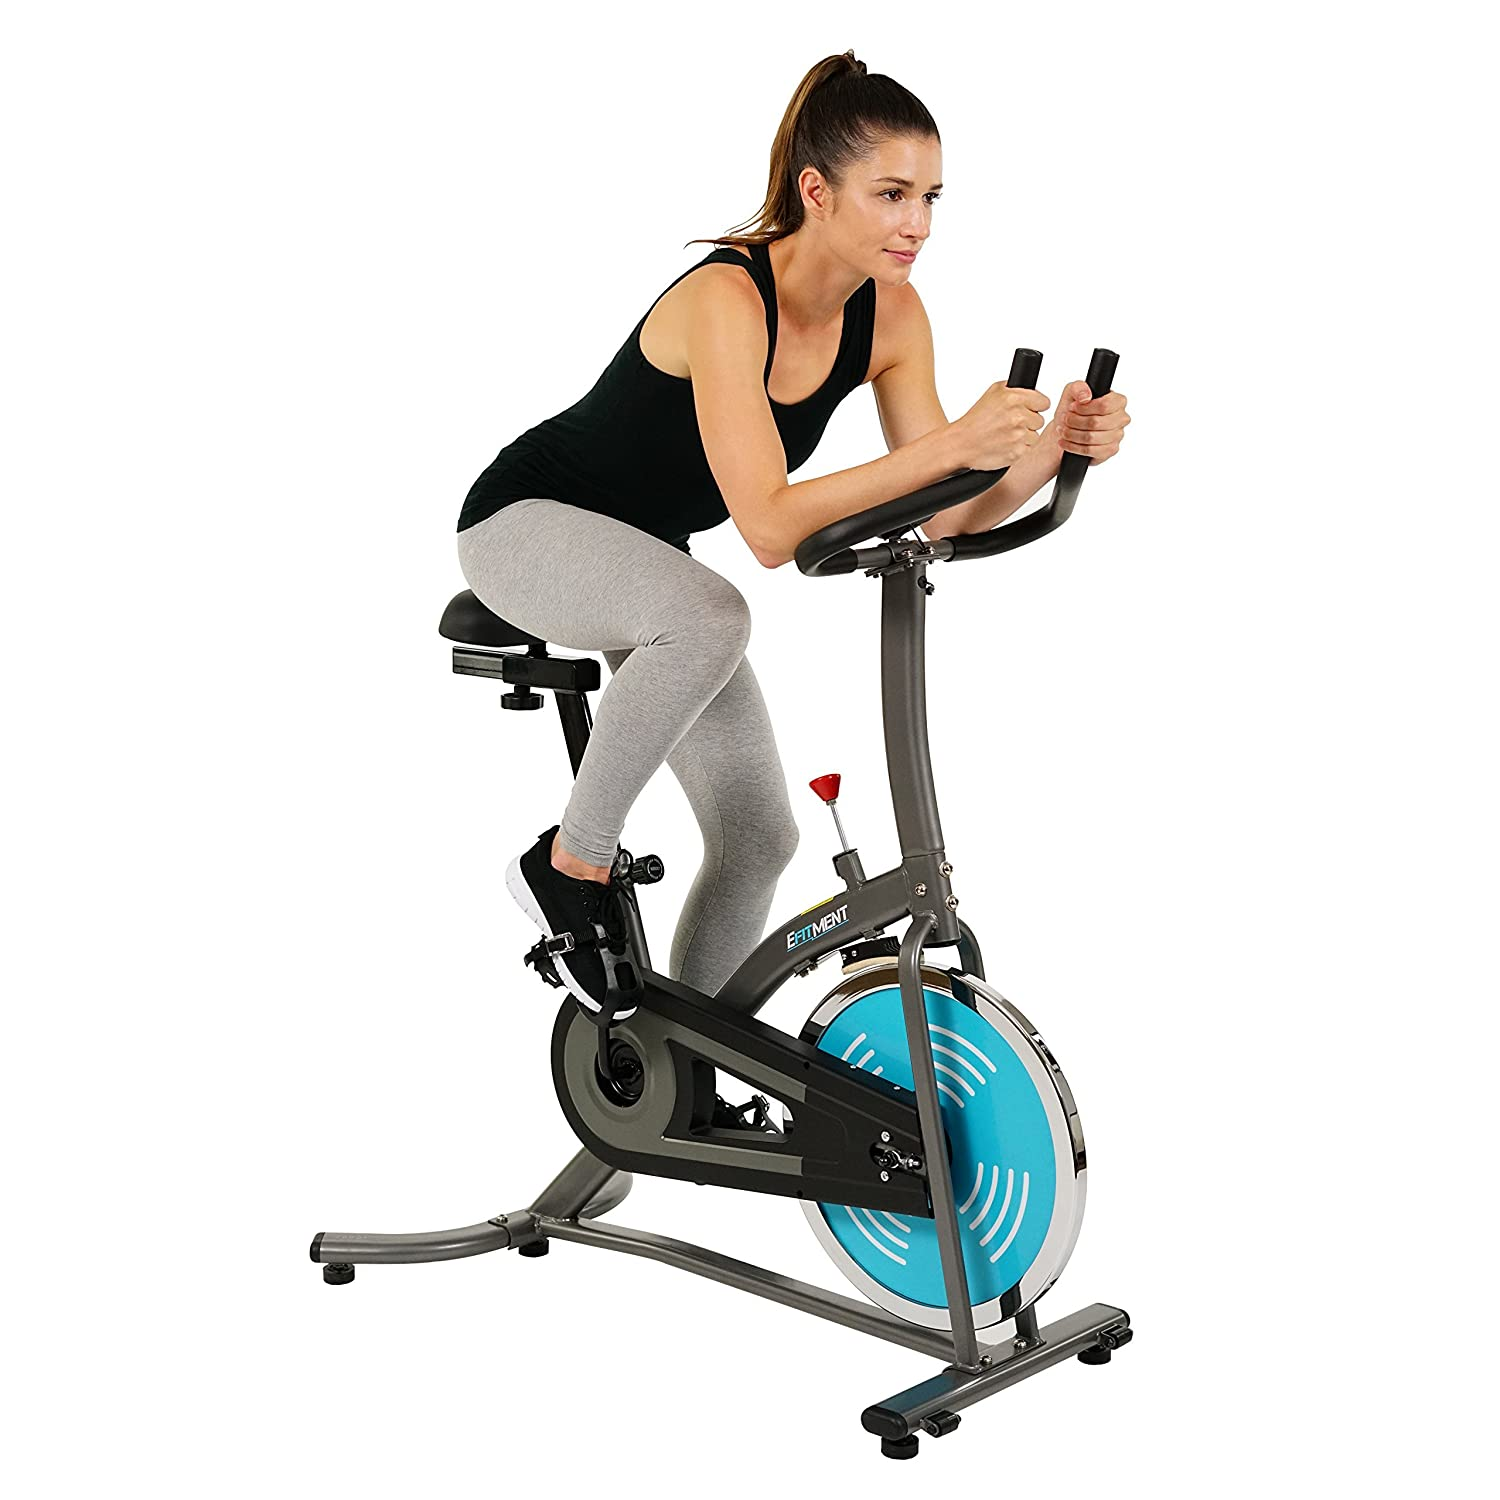 EFITMENT Indoor Cycle Bike, Quiet Belt Drive Cycling Trainer Exercise Bike Low Maintanance – IC007